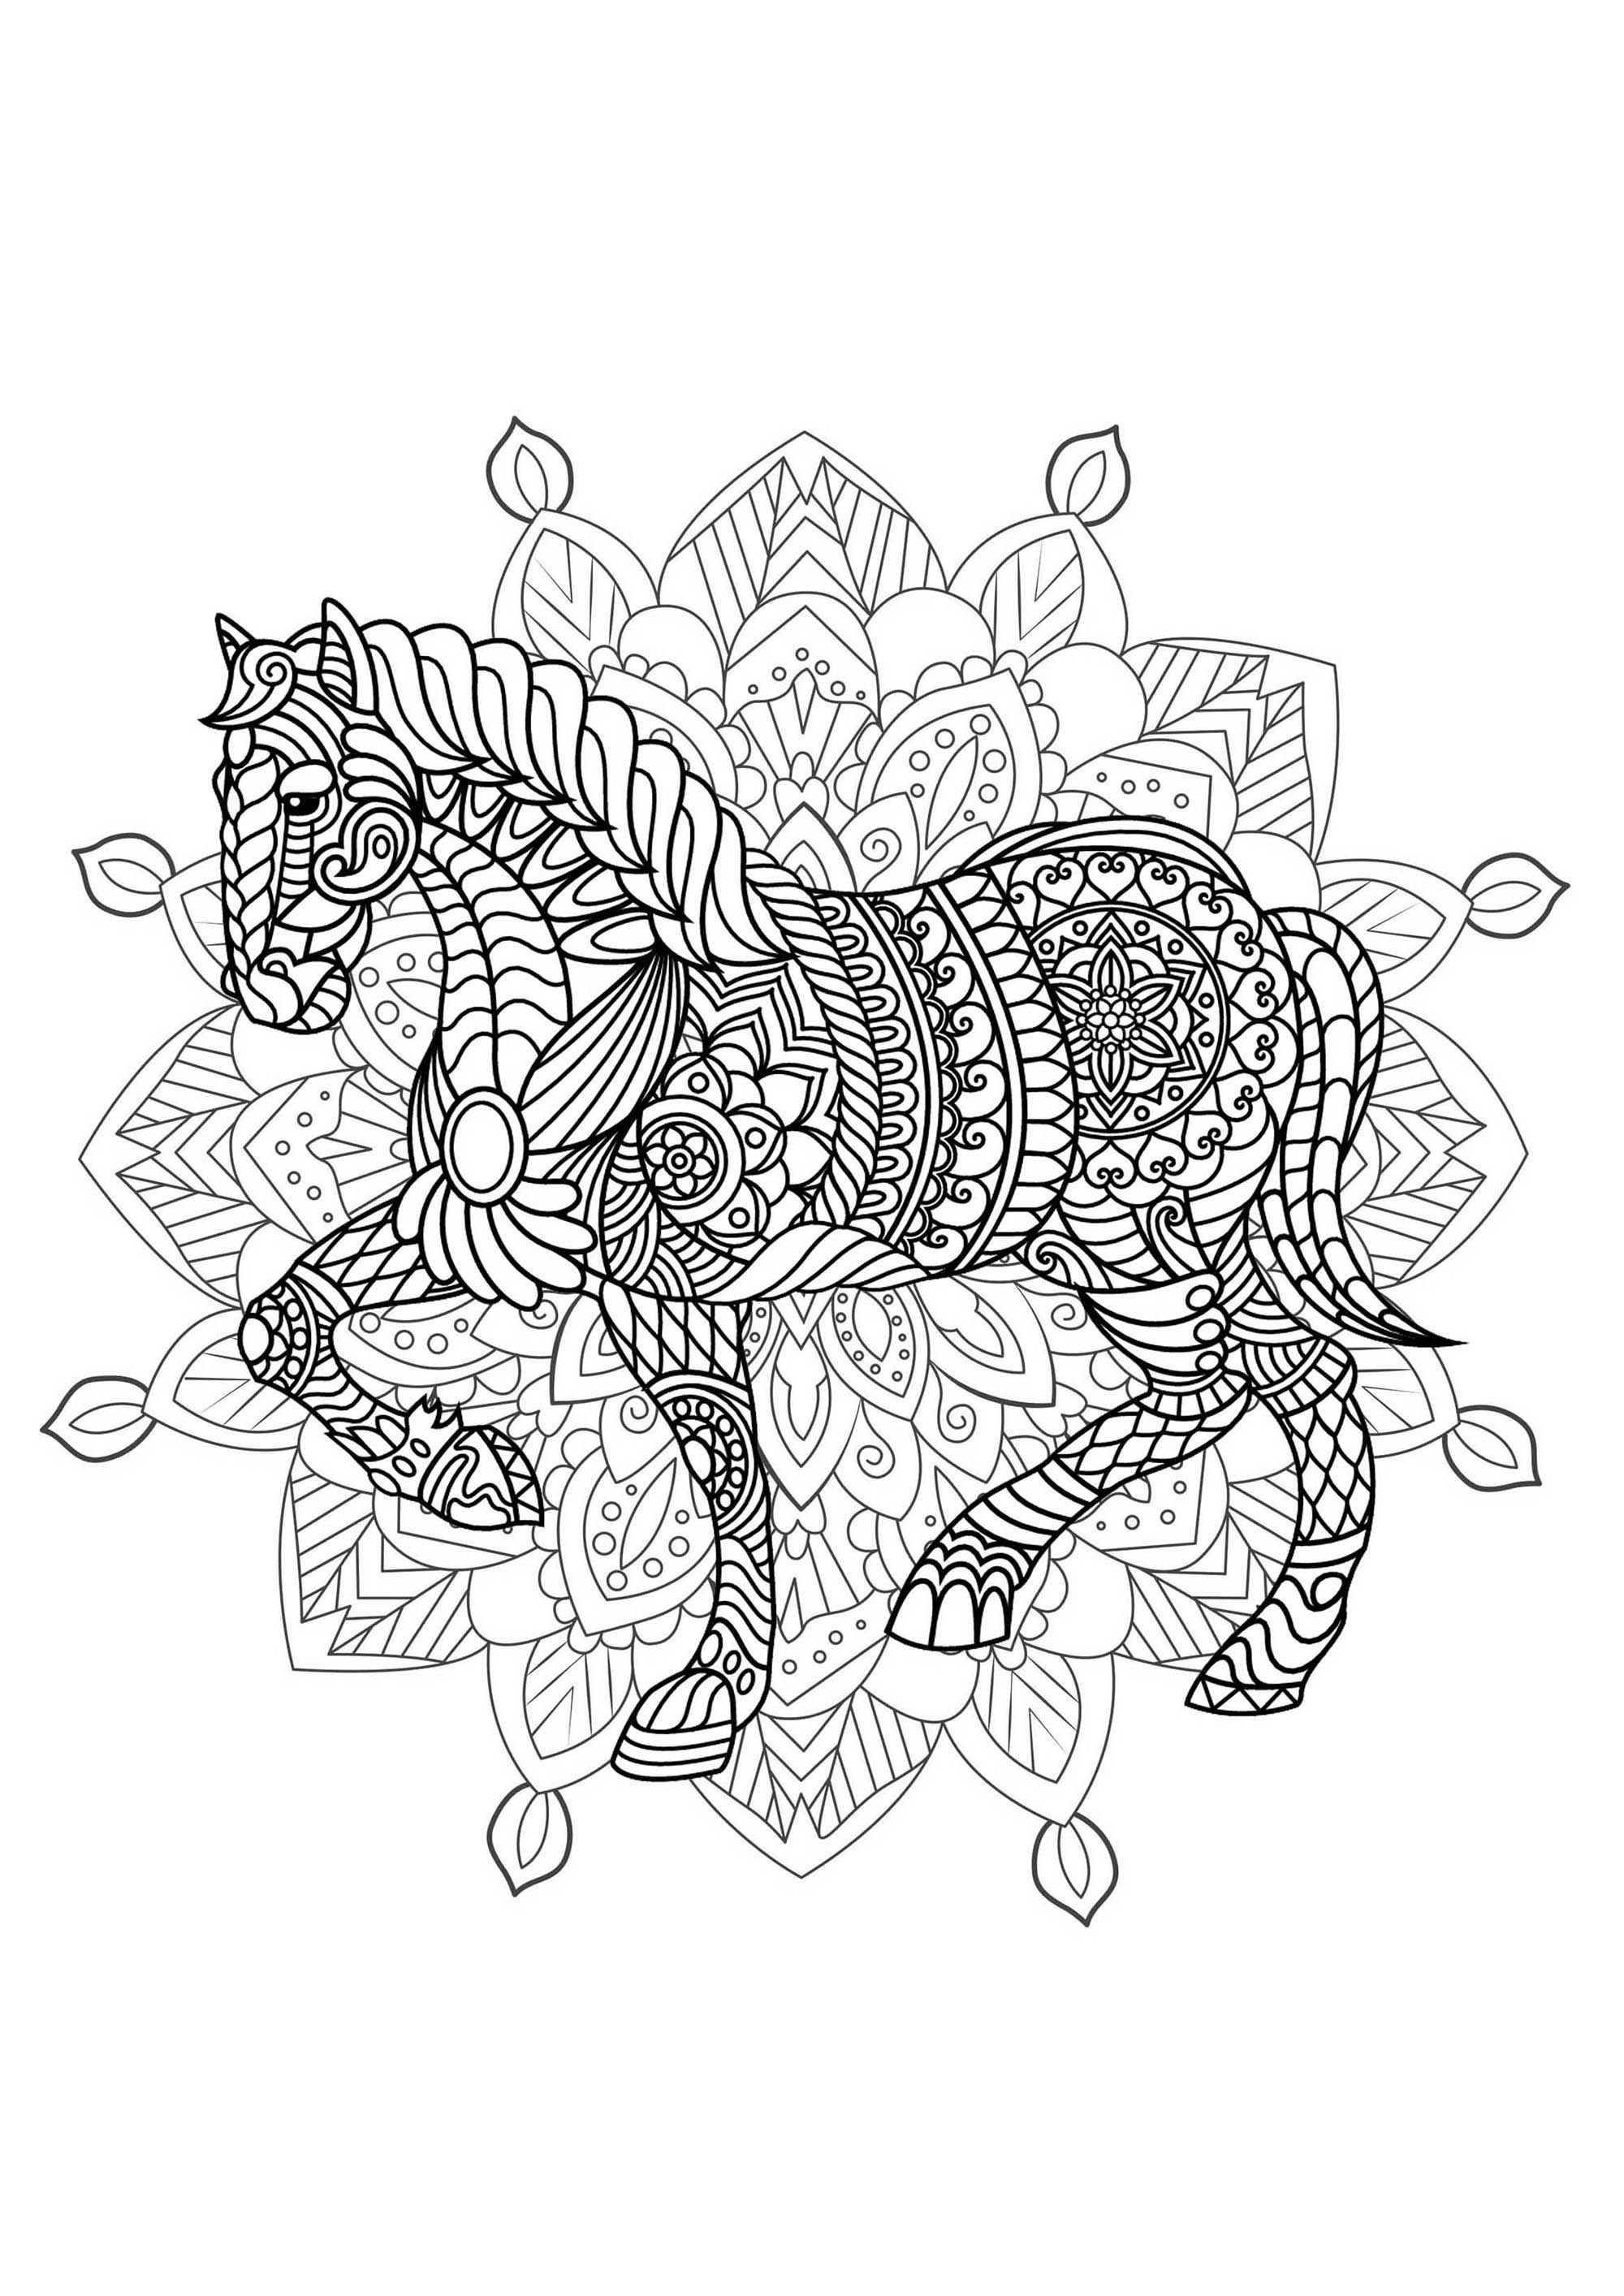 mandala with elegant horse and complex patterns m alas adult coloring pages. Black Bedroom Furniture Sets. Home Design Ideas